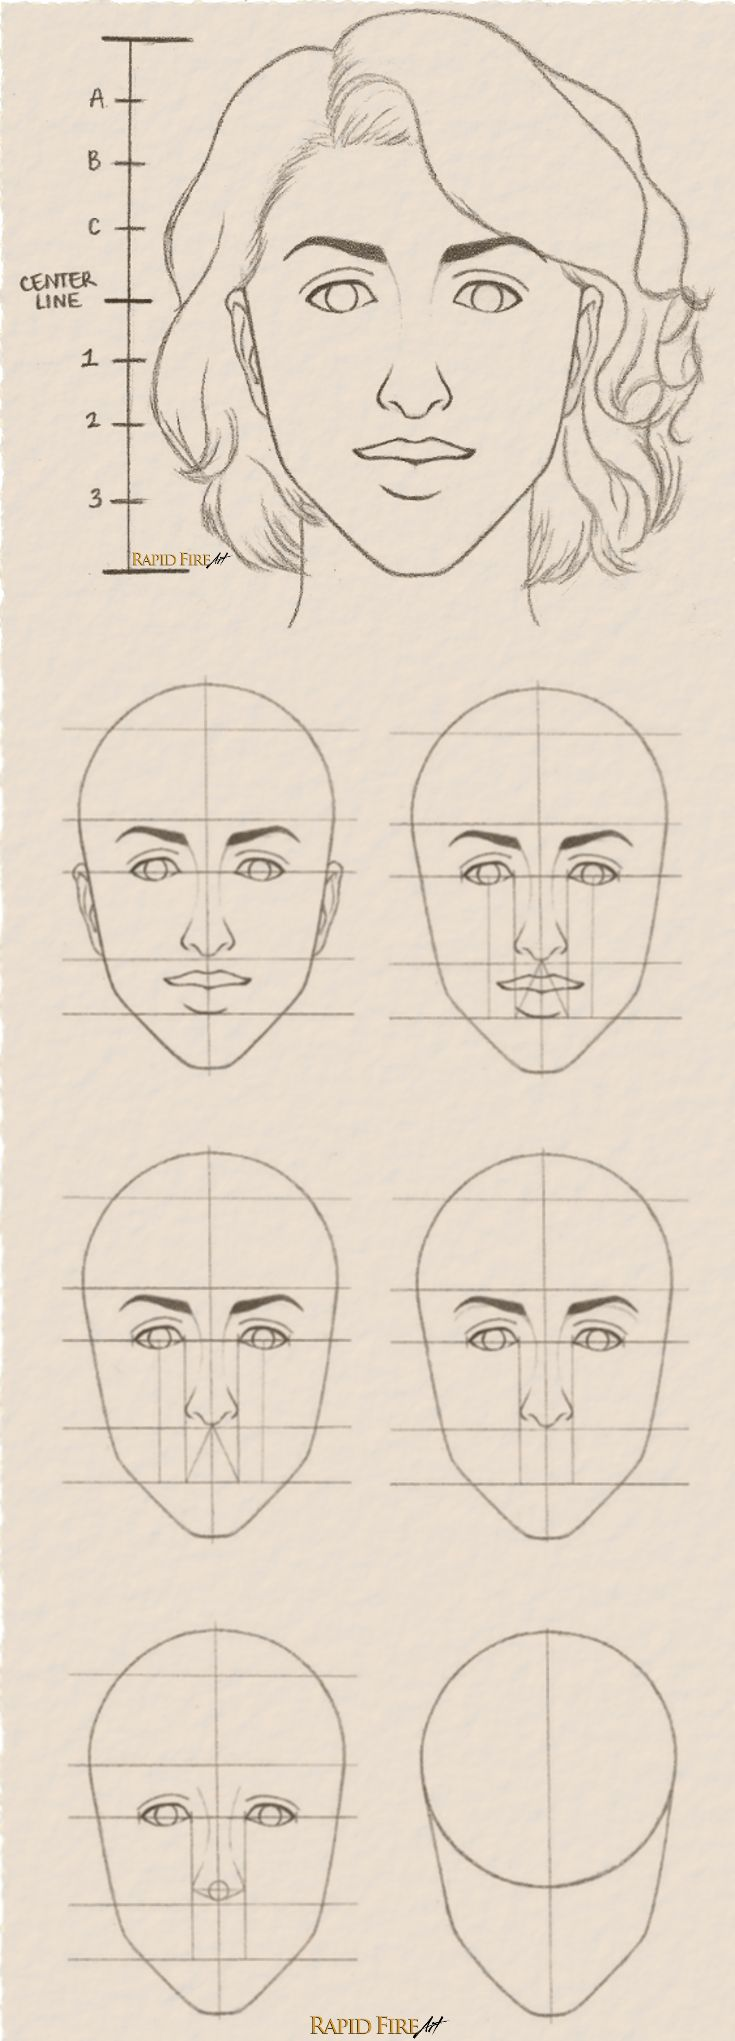 Tutorial: How To Draw Female Face Step By Step See Full Tutorial Here: Http